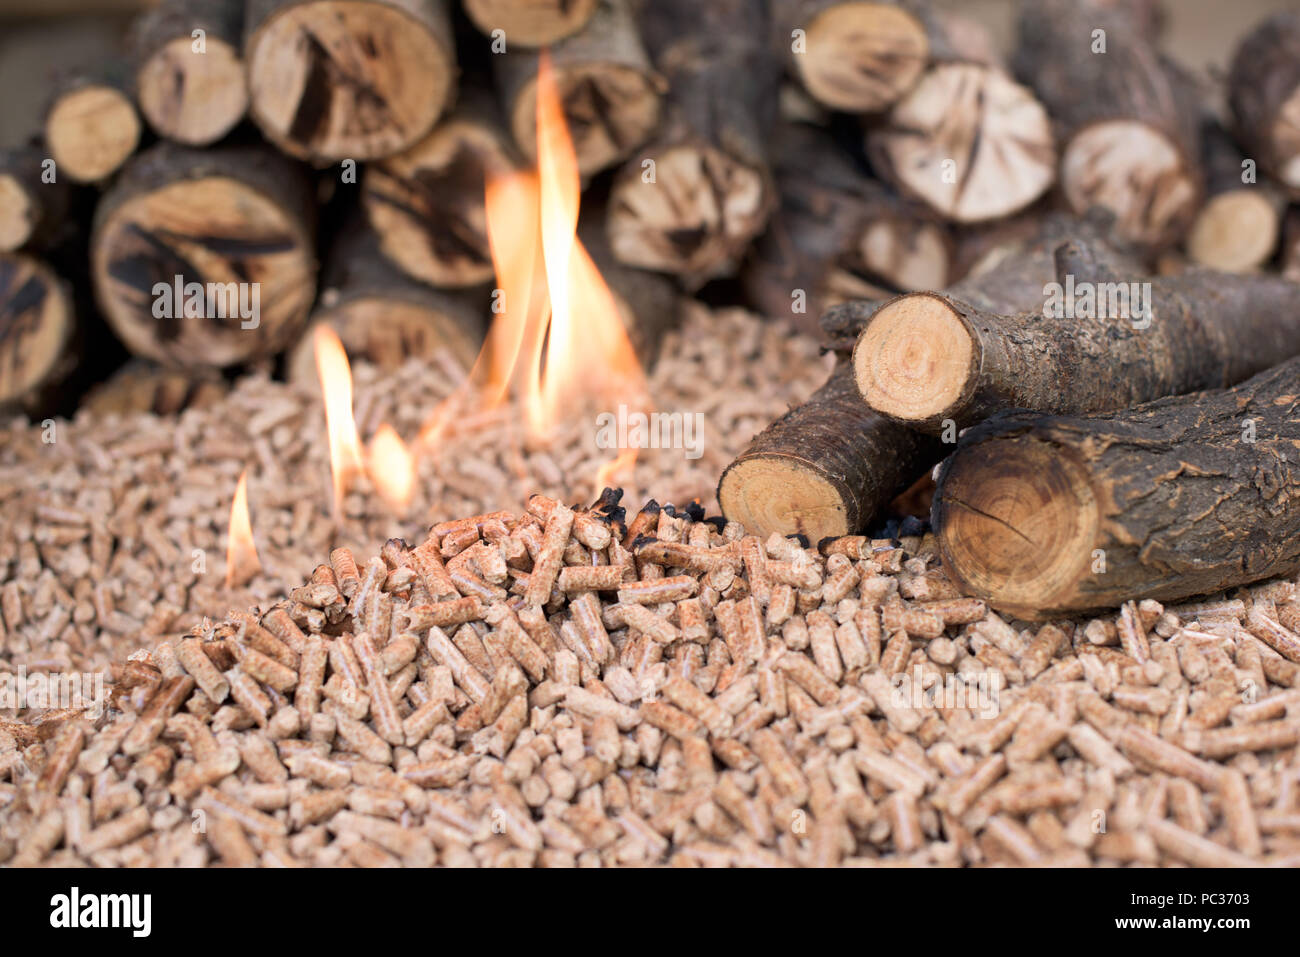 Pile of oak pellets and wood in flames - Stock Image